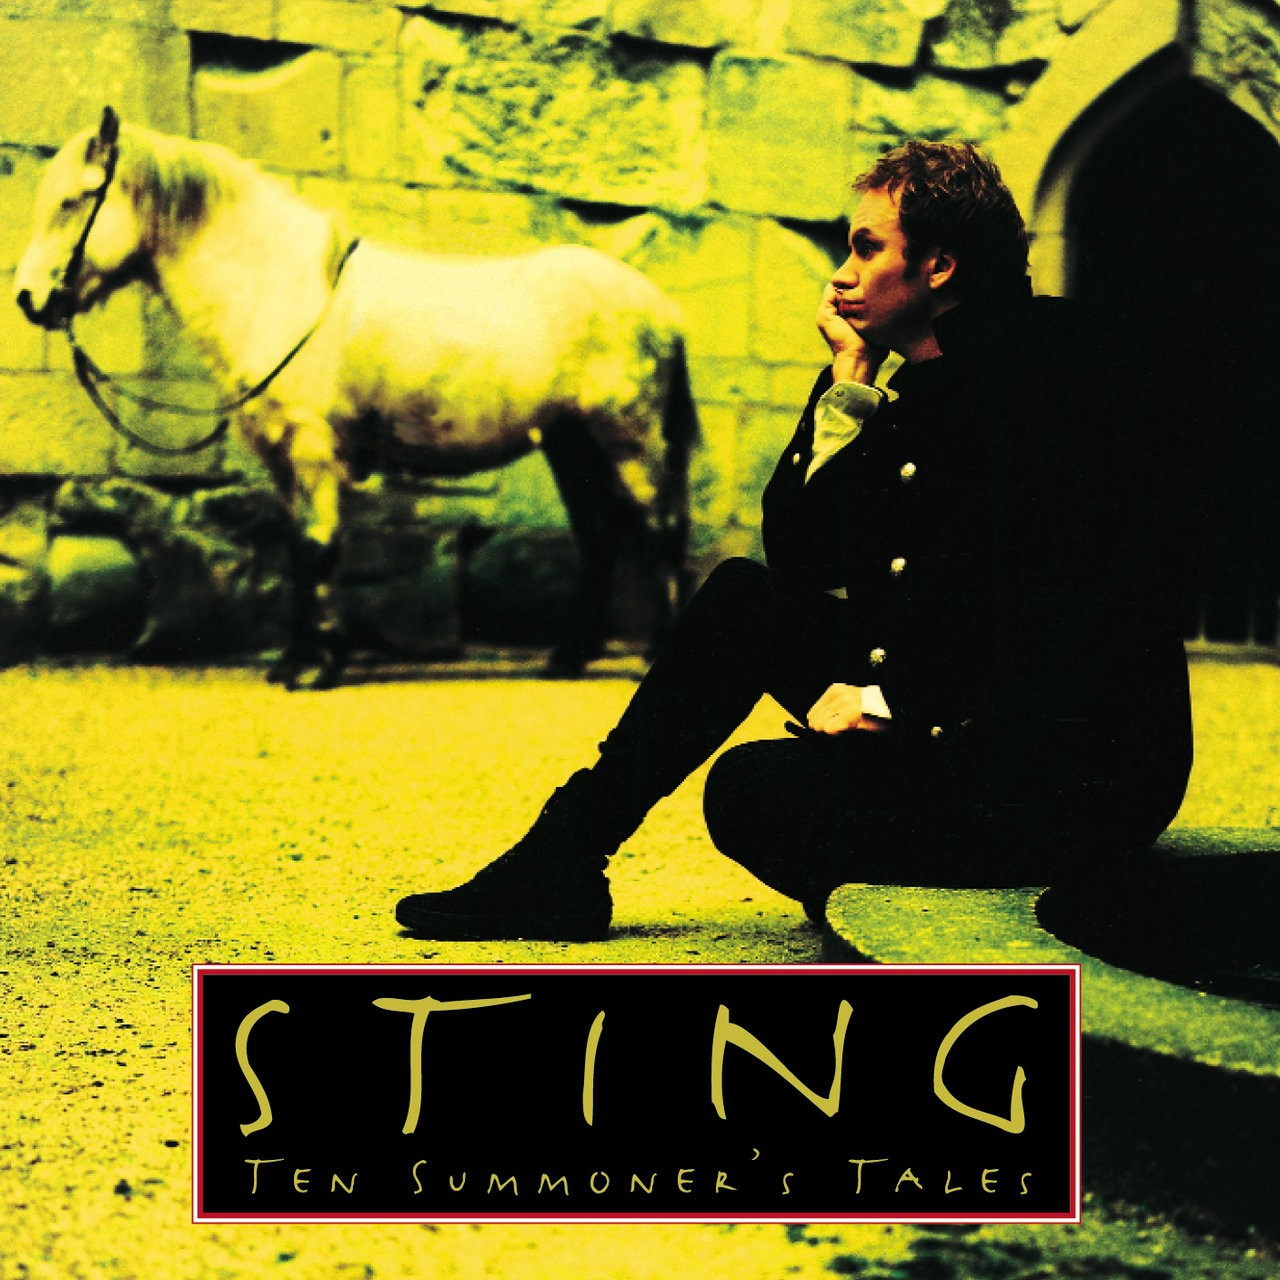 Sting - Ten Summoner's Tales LP